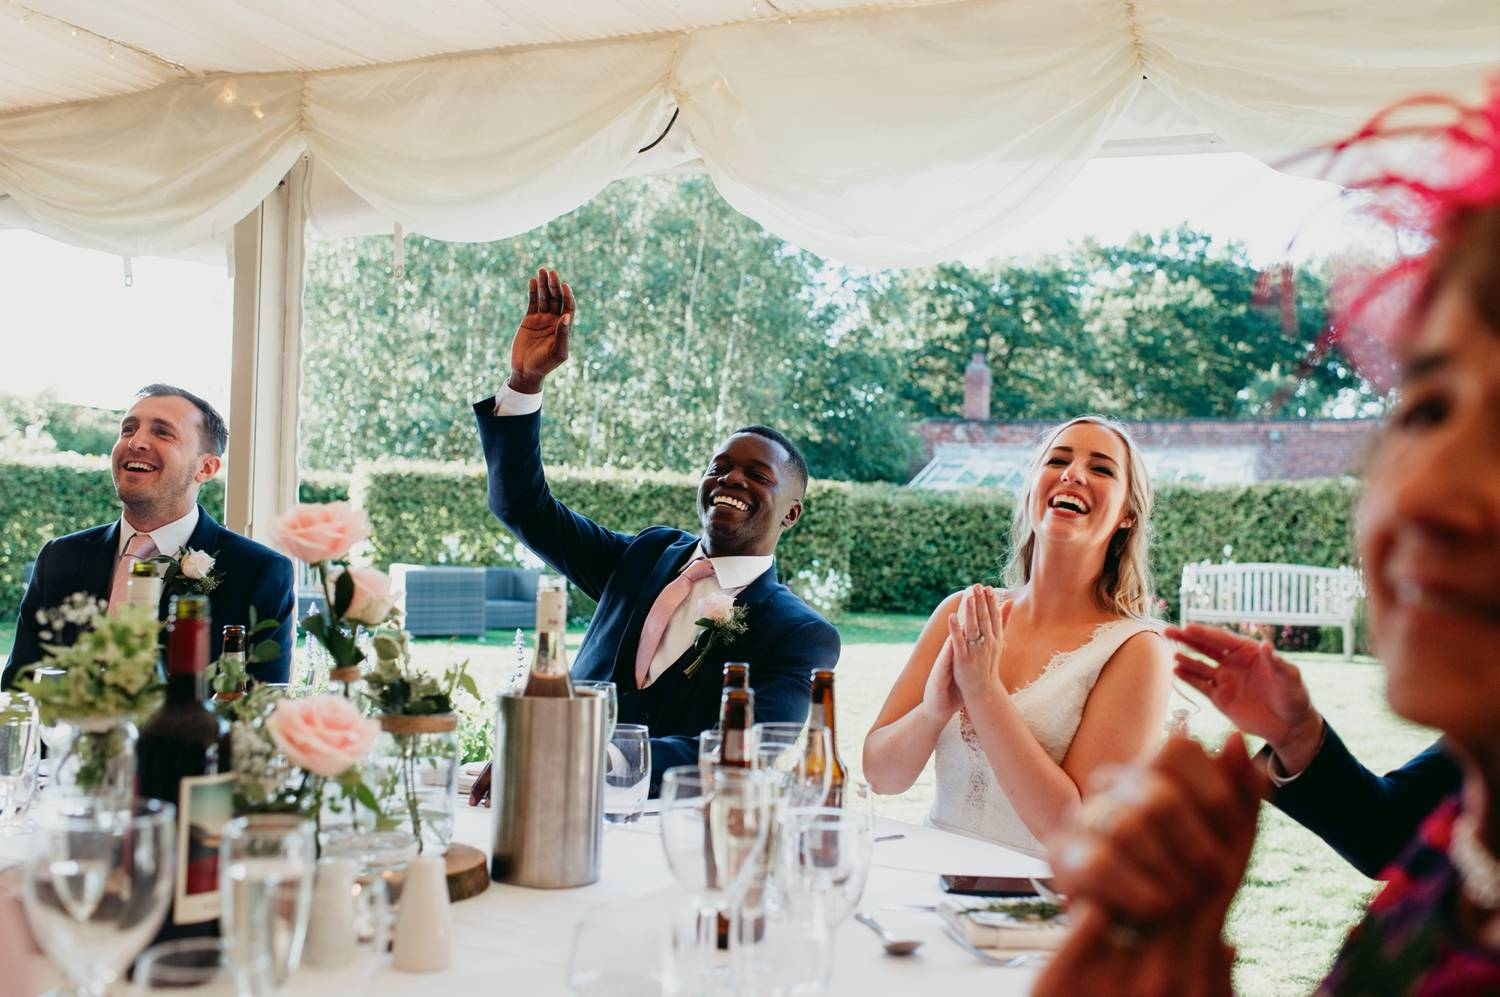 Bride and groom cheer and toast under a tent